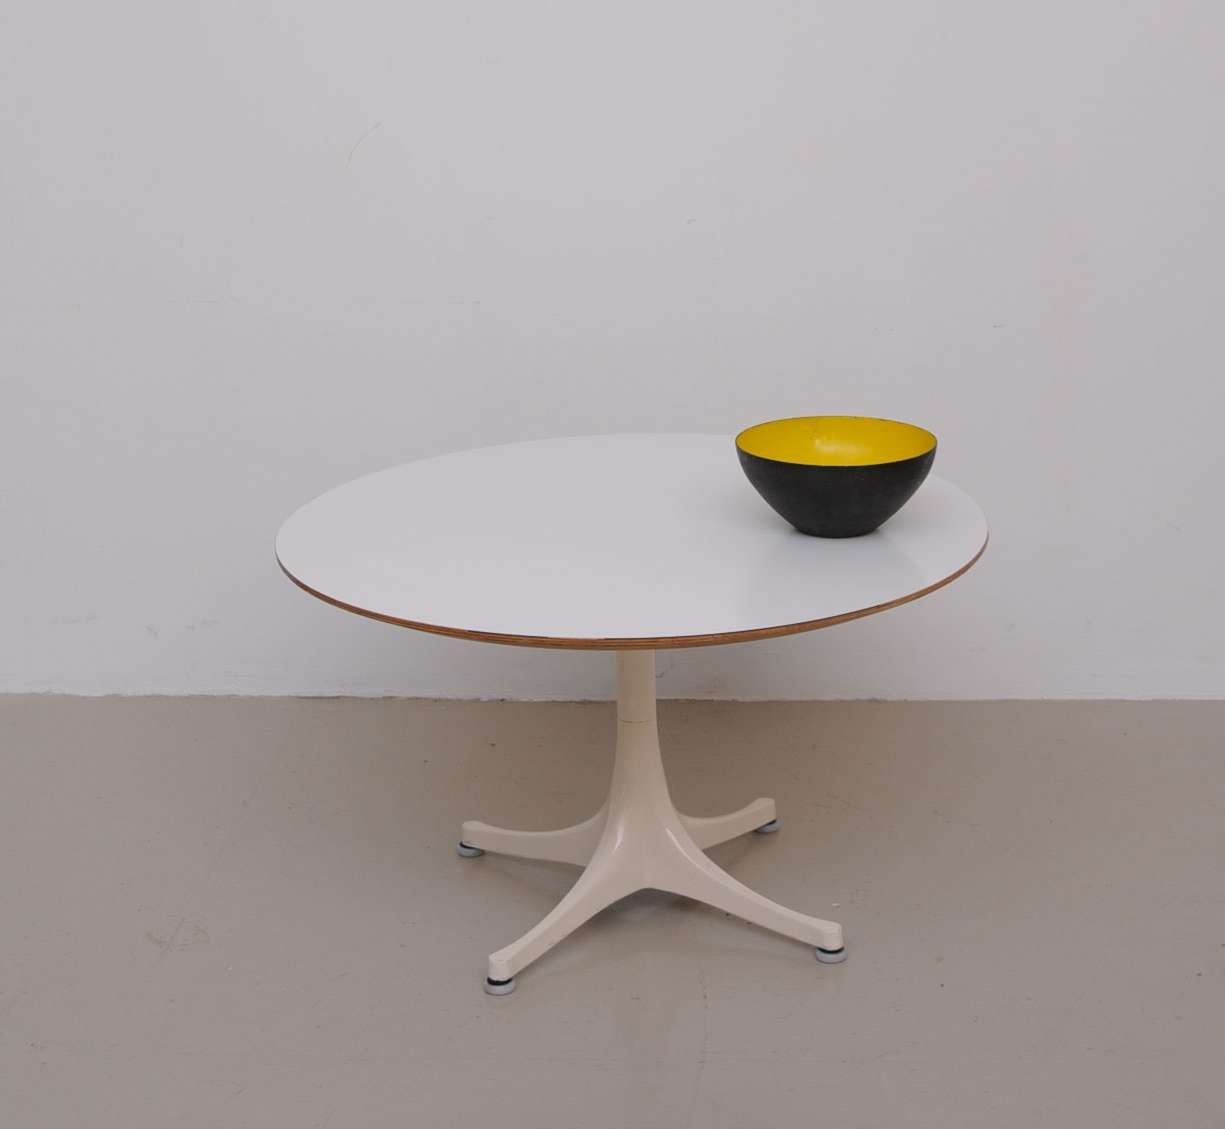 Well Known Nelson Coffee Tables Within Vintage Coffee Tablegeorge Nelson For Vitra For Sale At Pamono (View 3 of 20)